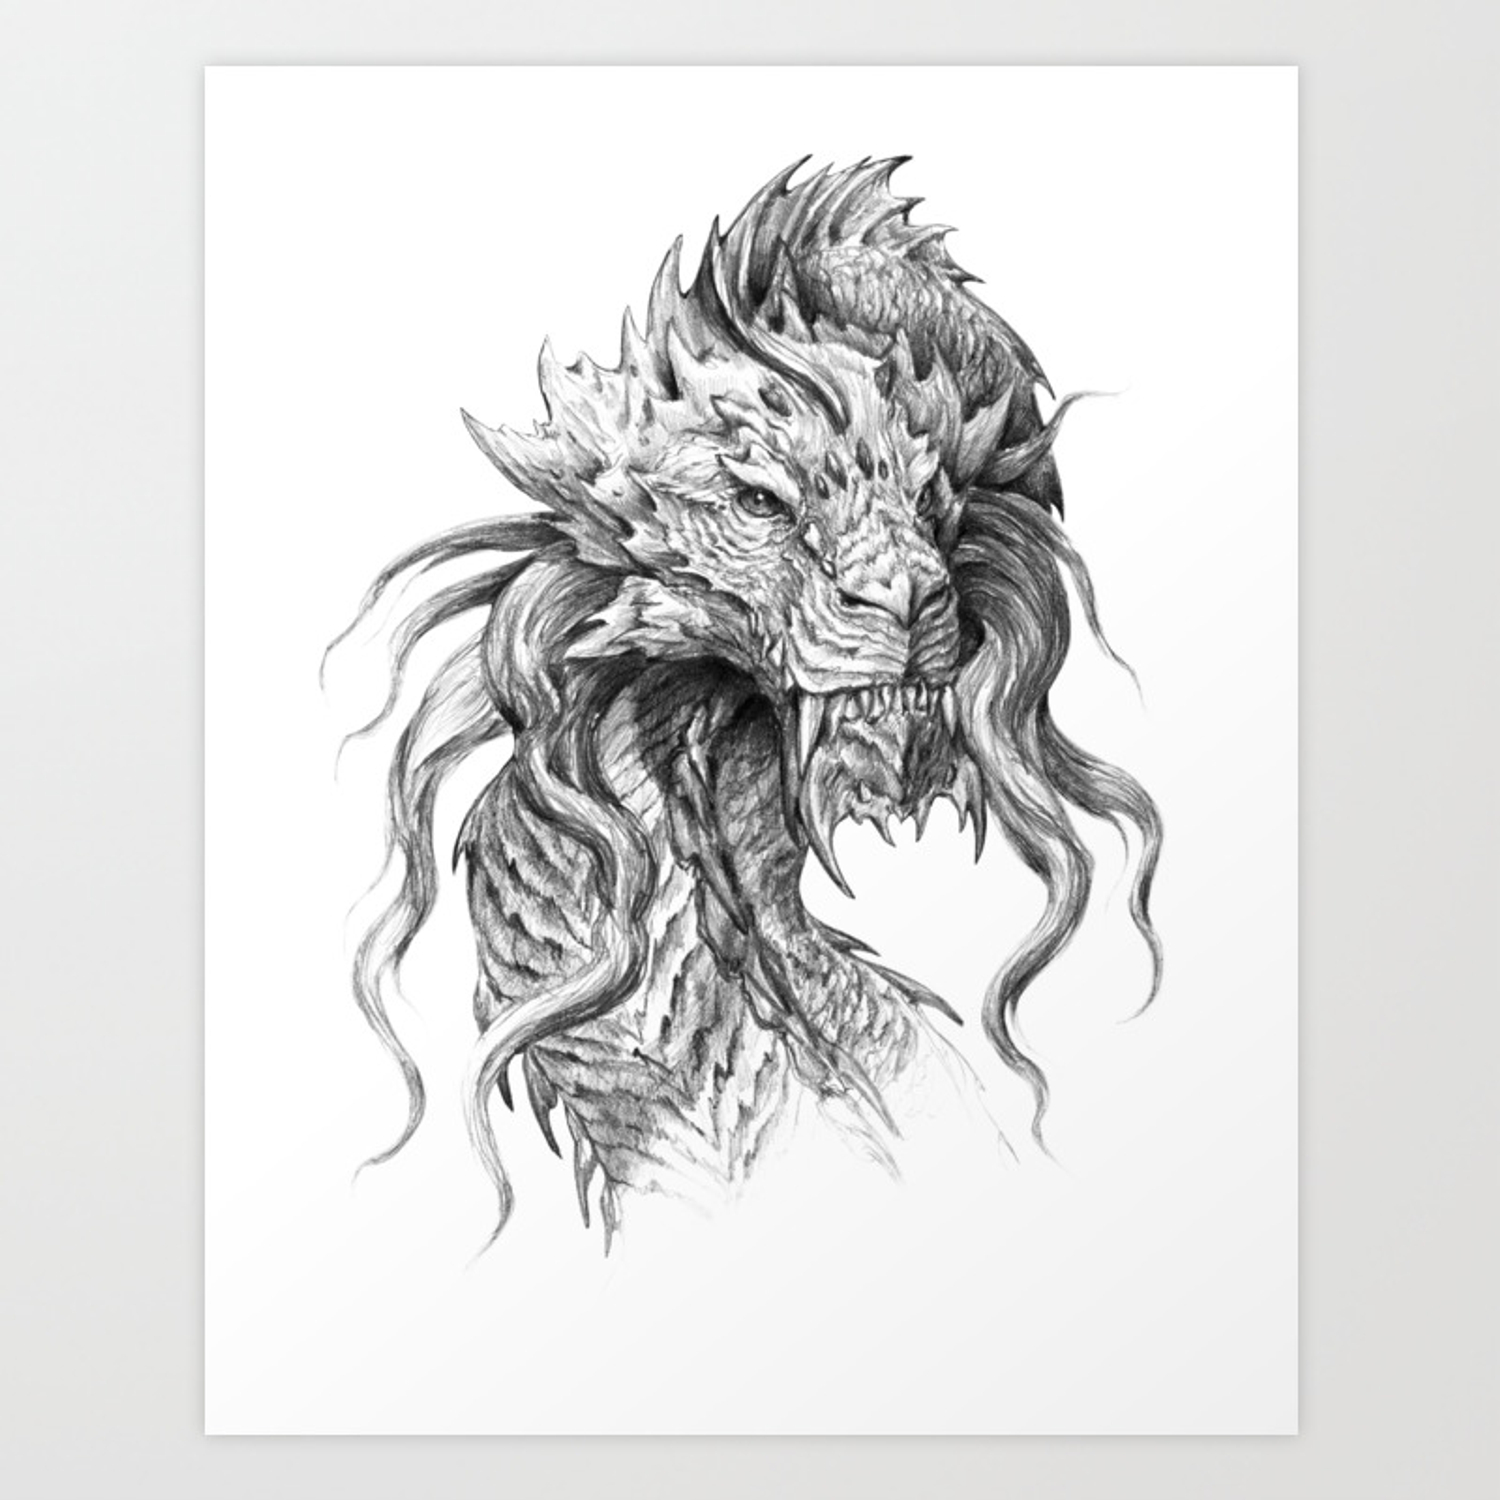 Dark side japanese dragon portrait graphite pencil art art print